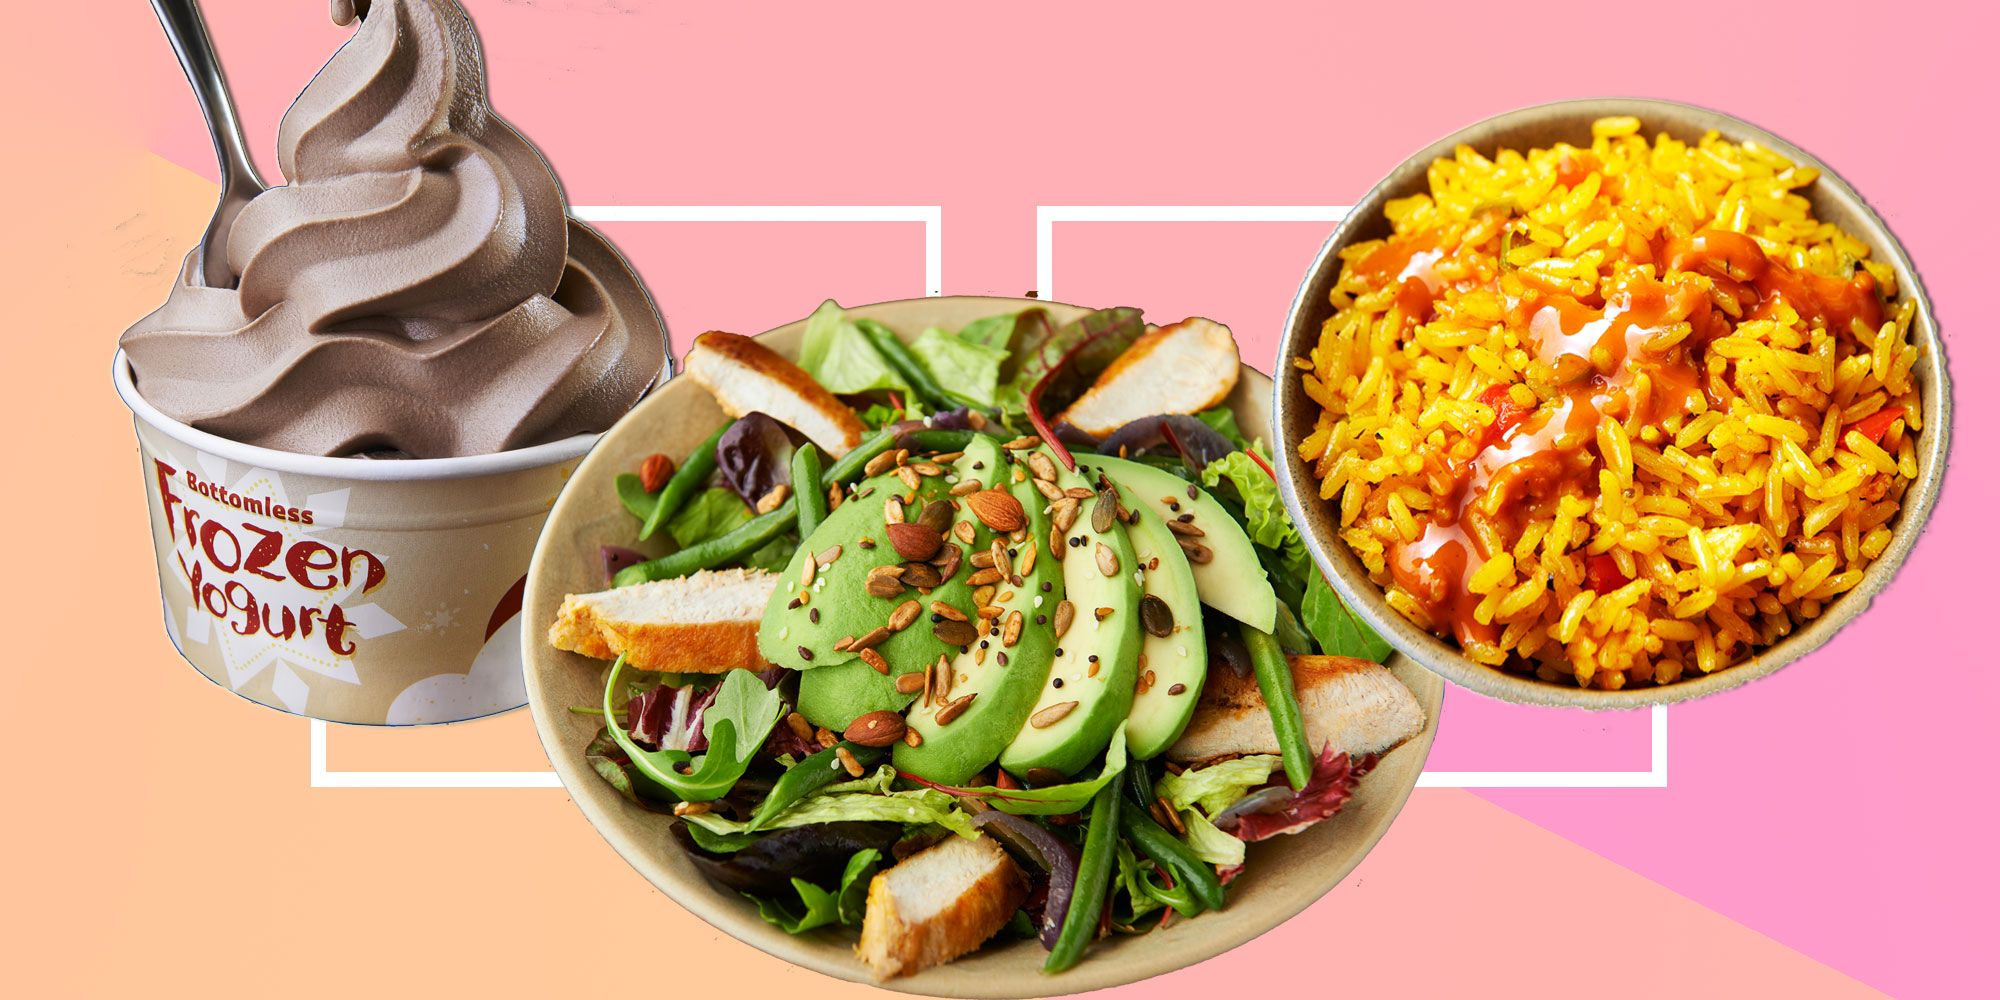 Nando's calories and nutrition - 11 of the healthiest things you can eat at Nando's